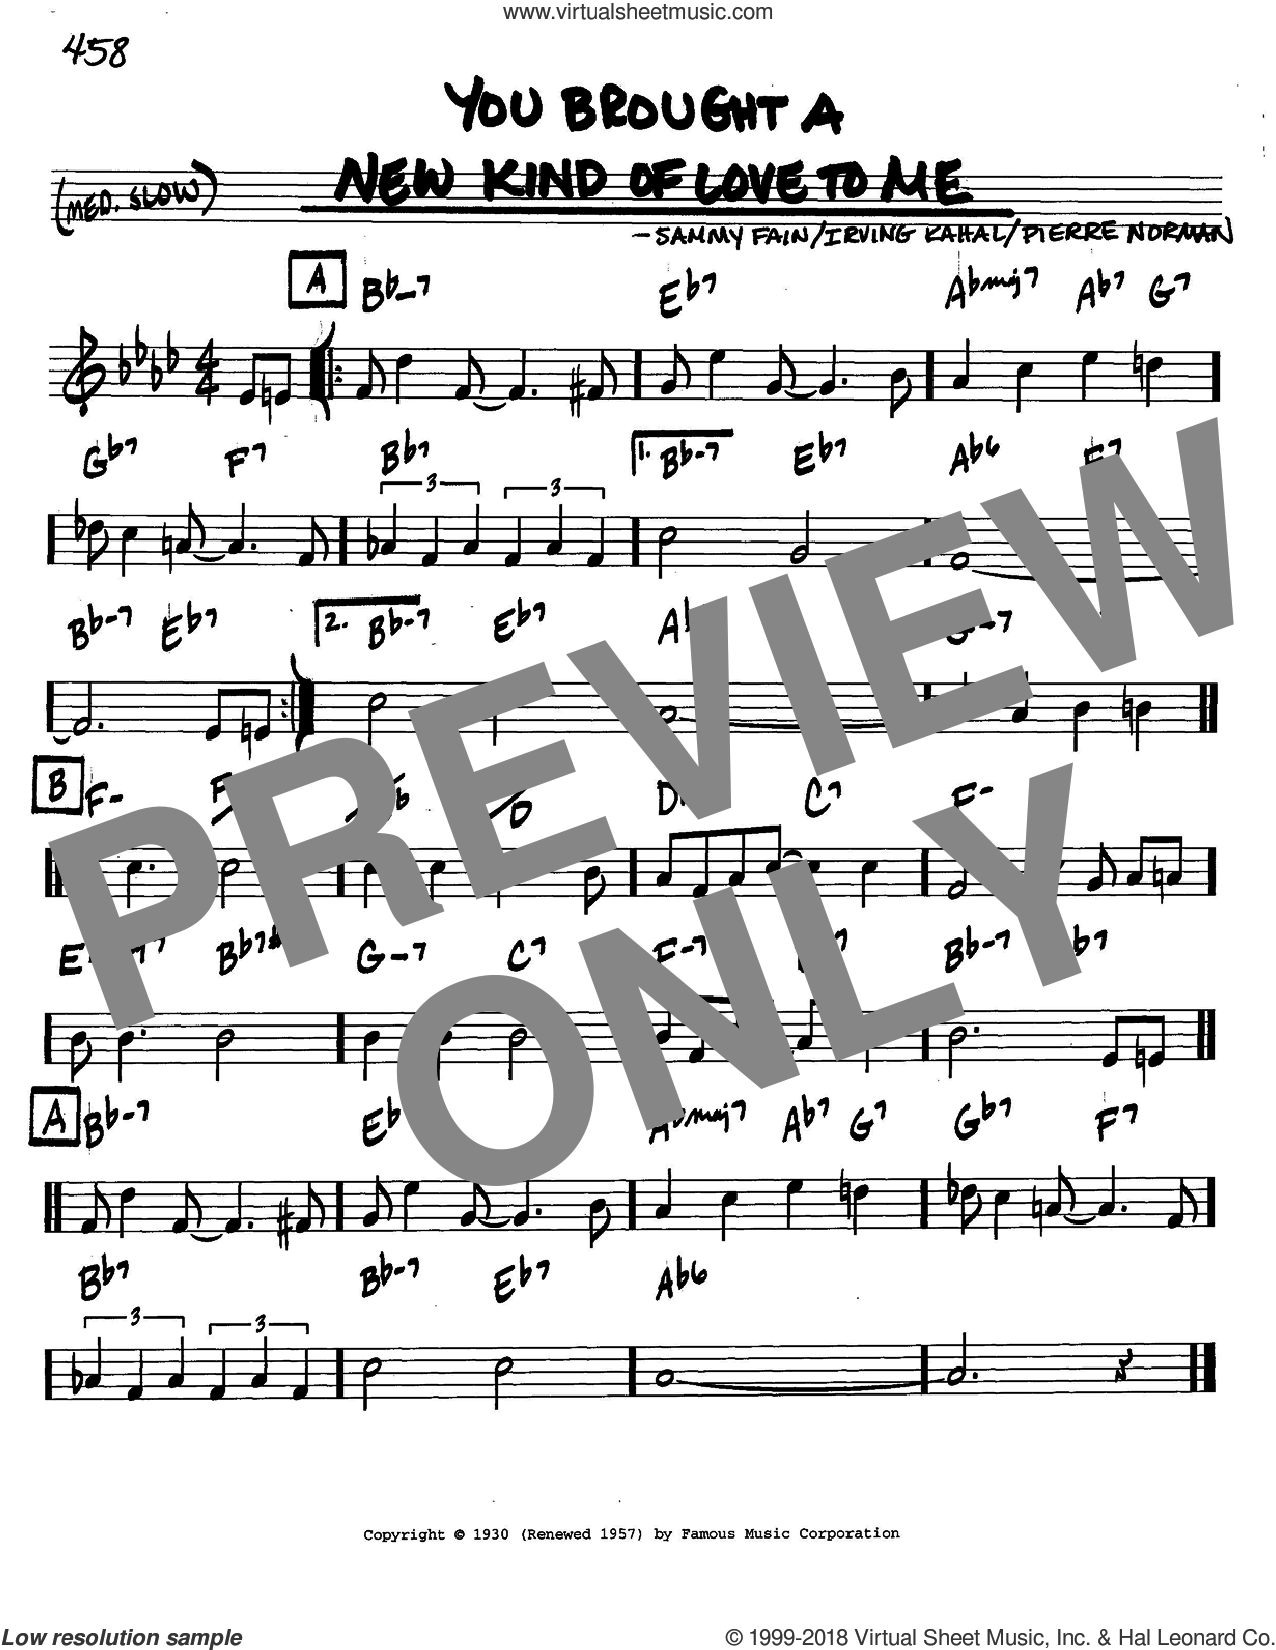 You Brought A New Kind Of Love To Me sheet music for voice and other instruments (C) by Sammy Fain